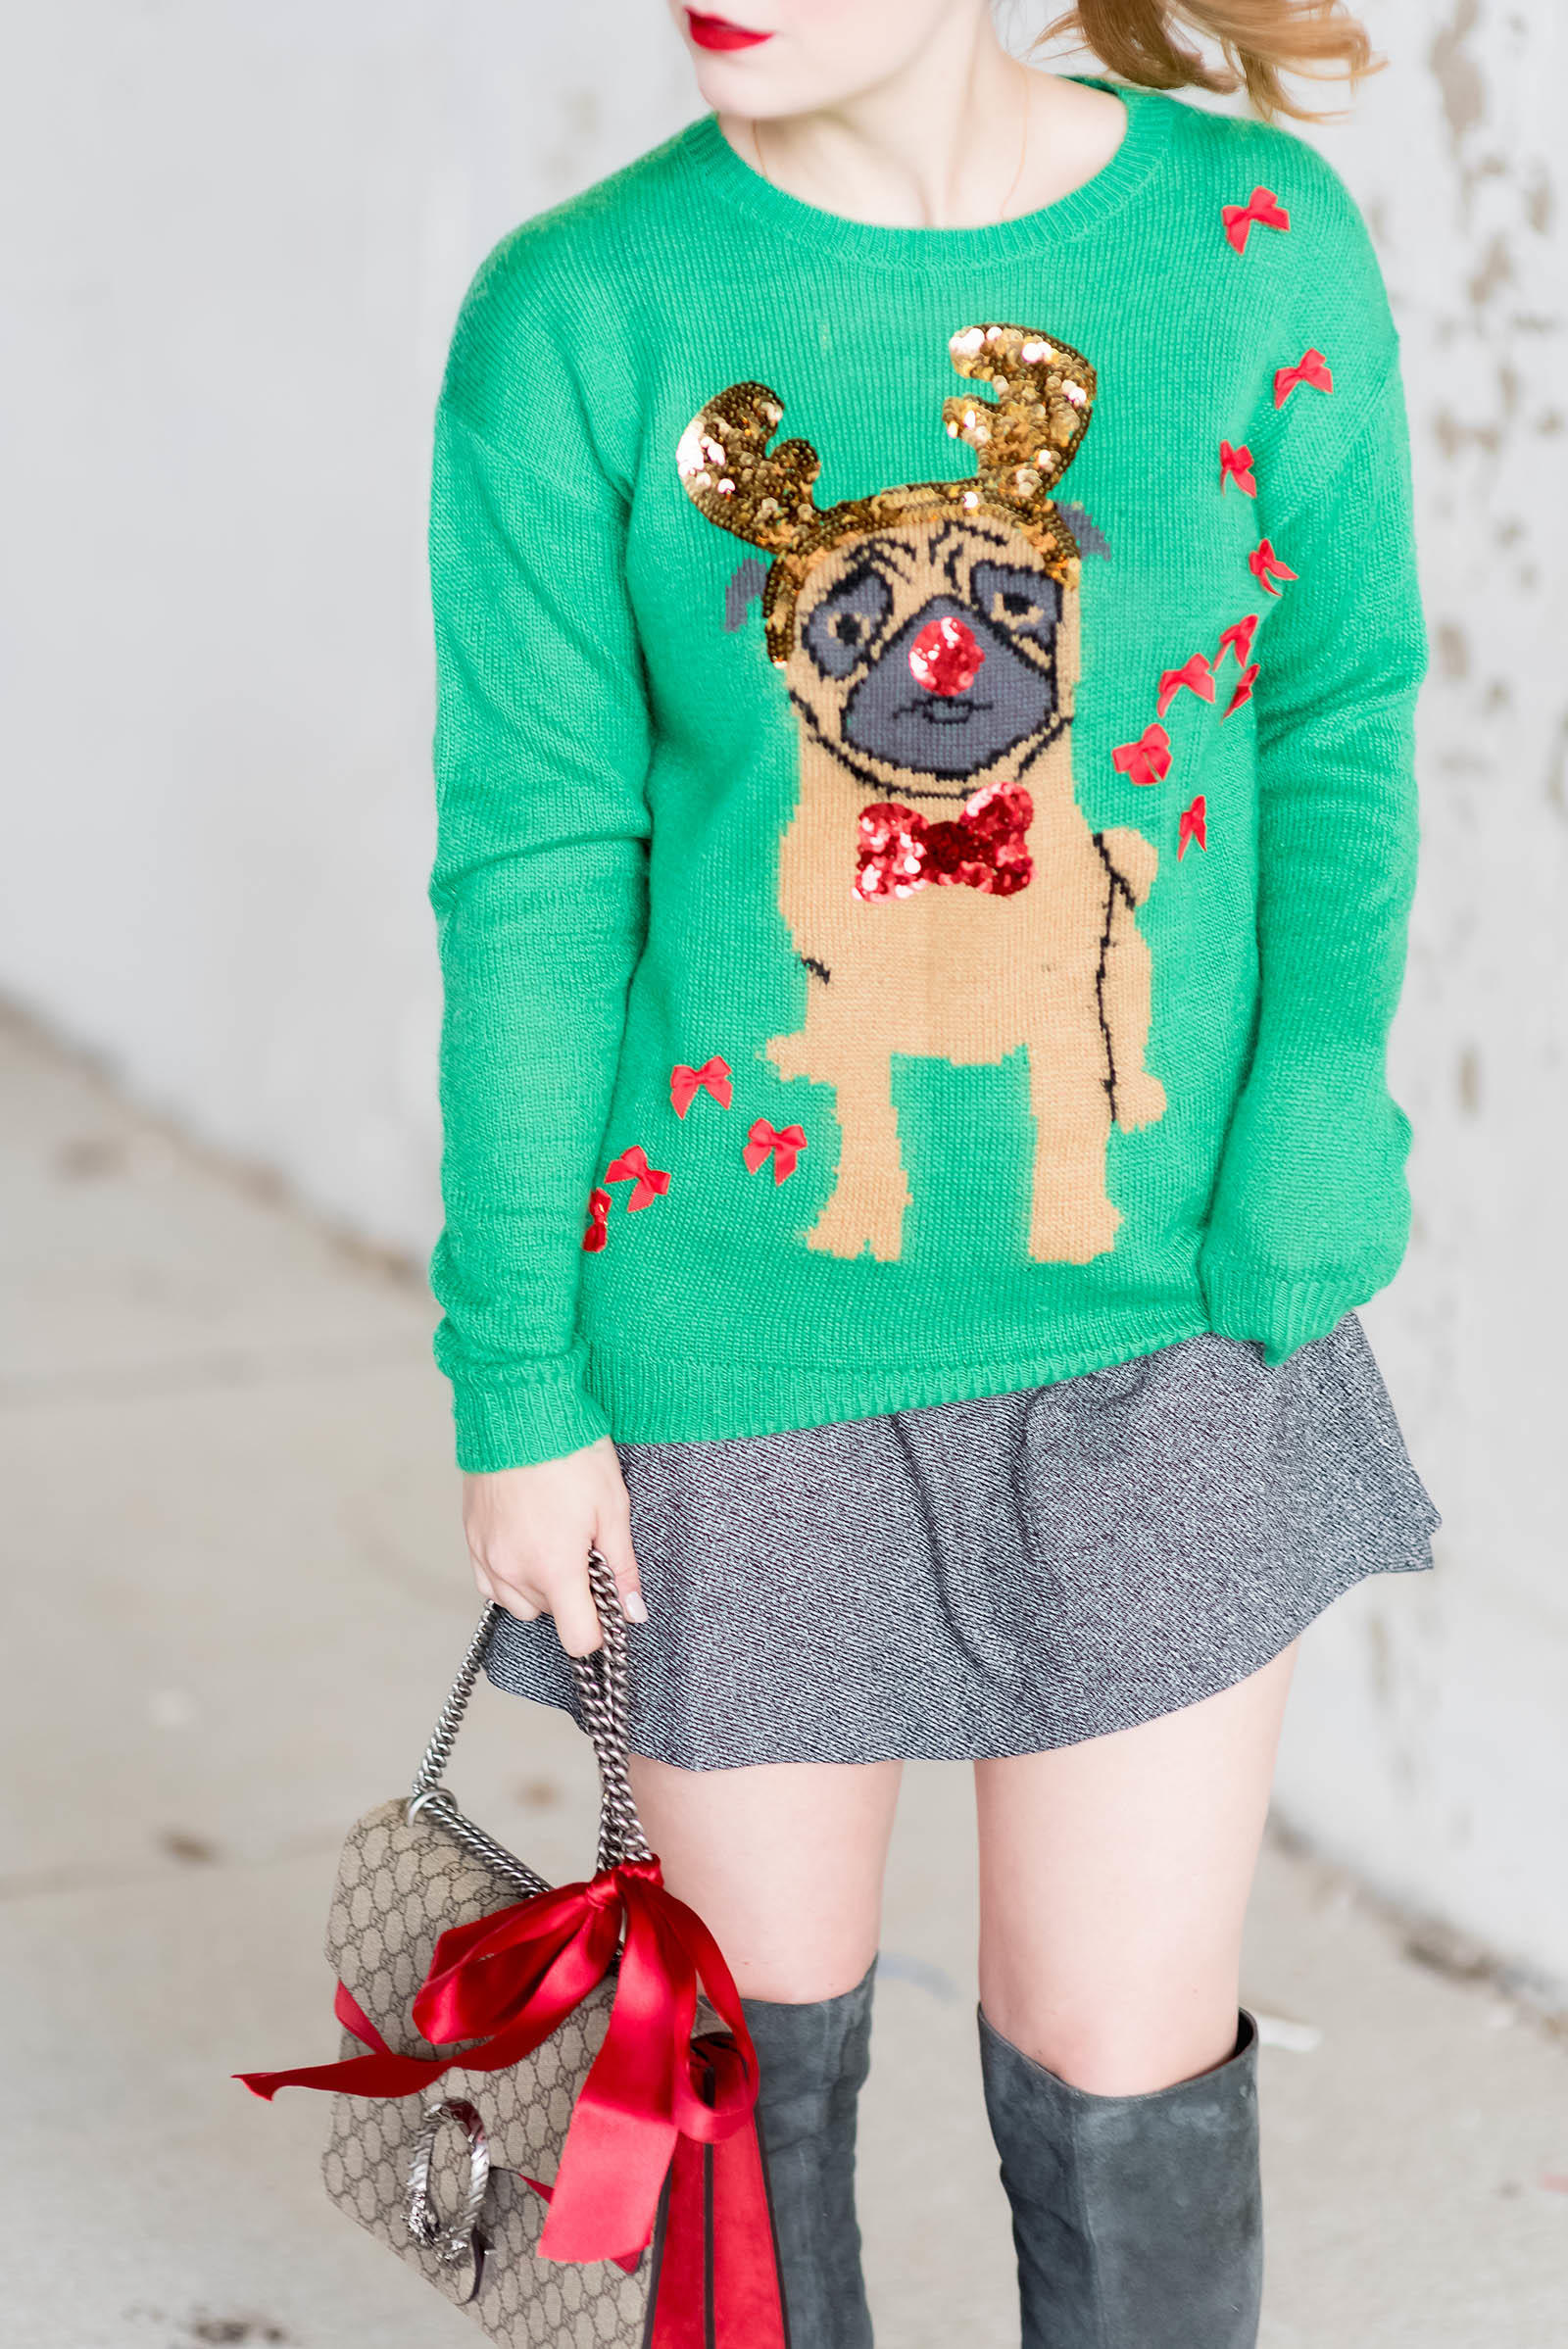 How to Style An Ugly Christmas Sweater - Sed Bona